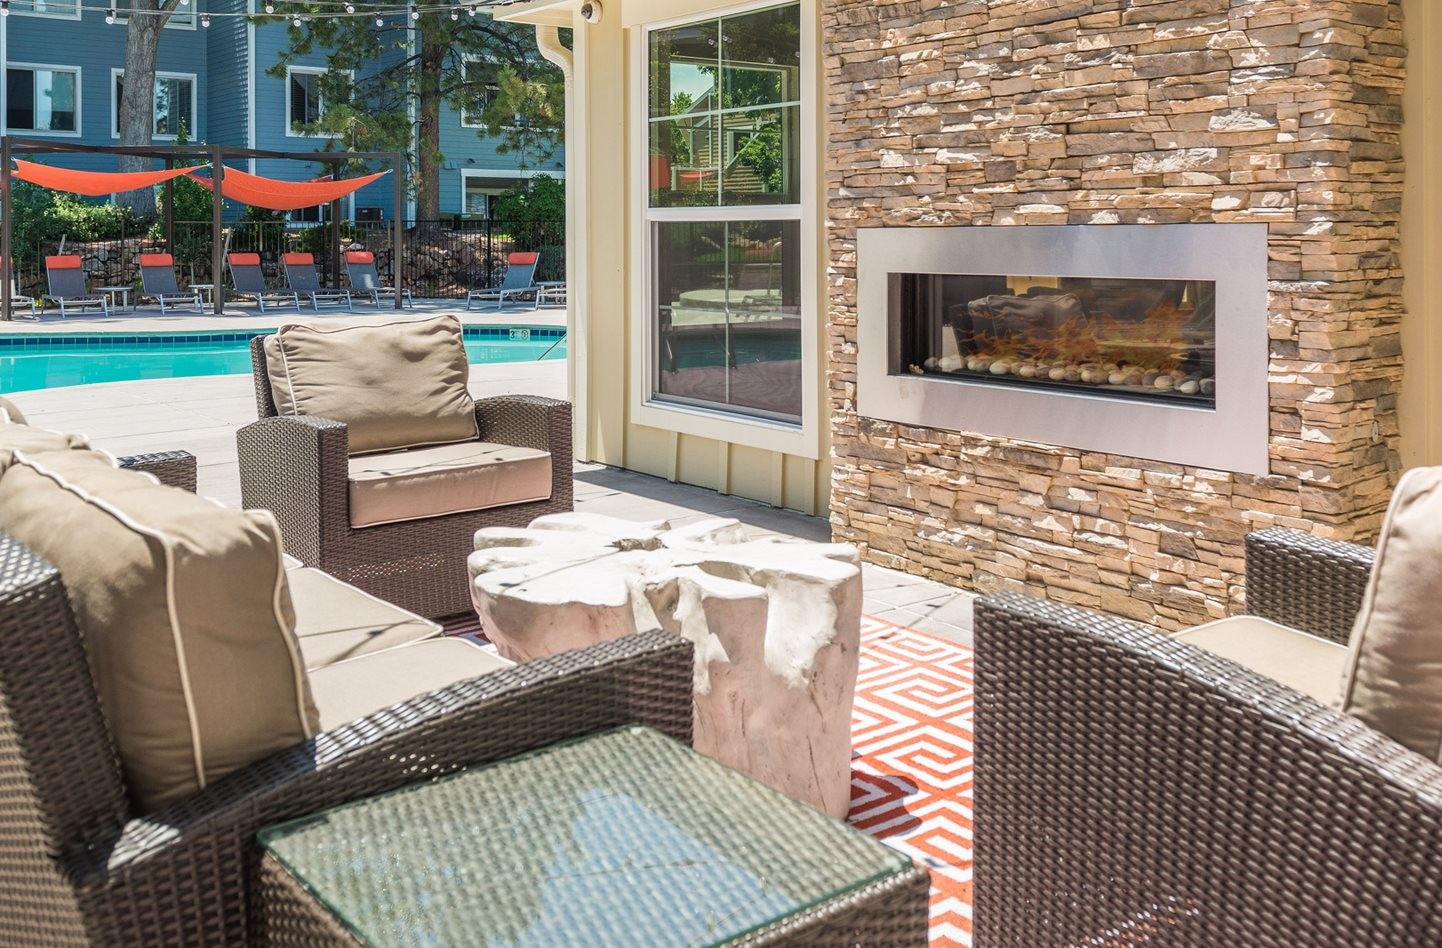 Outdoor Fireplace at Conifer Creek Apartments in Aurora, CO